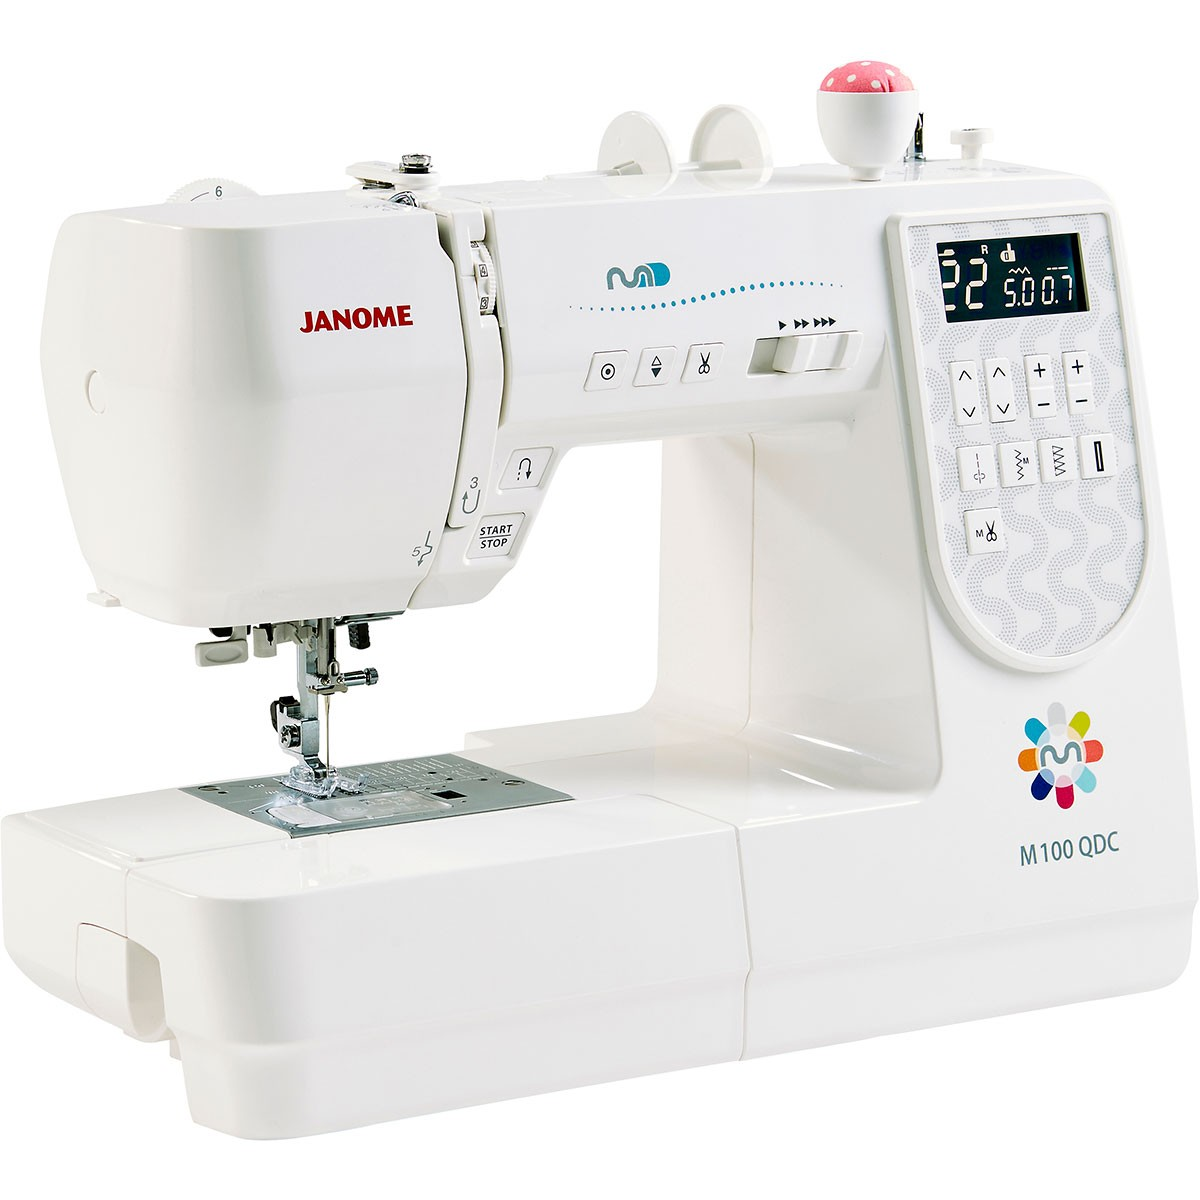 janome M100_qdc 2 - Franklins Group